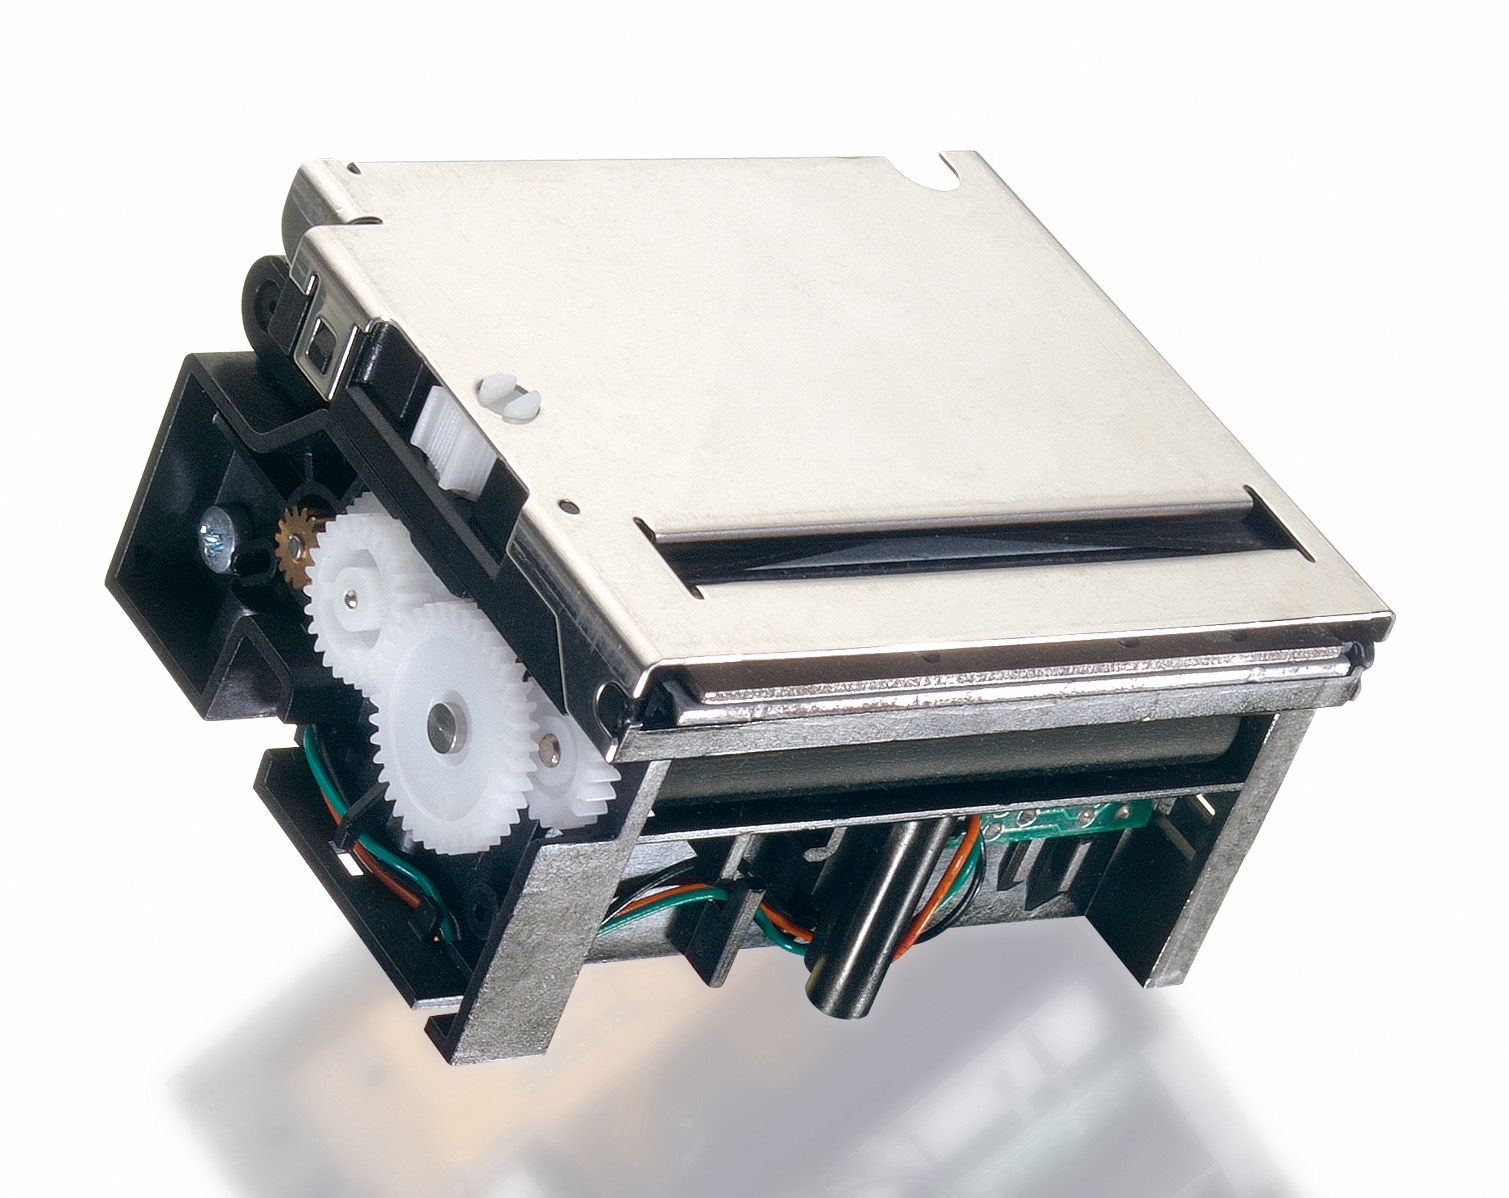 CM / RM thermal printer mechanisms